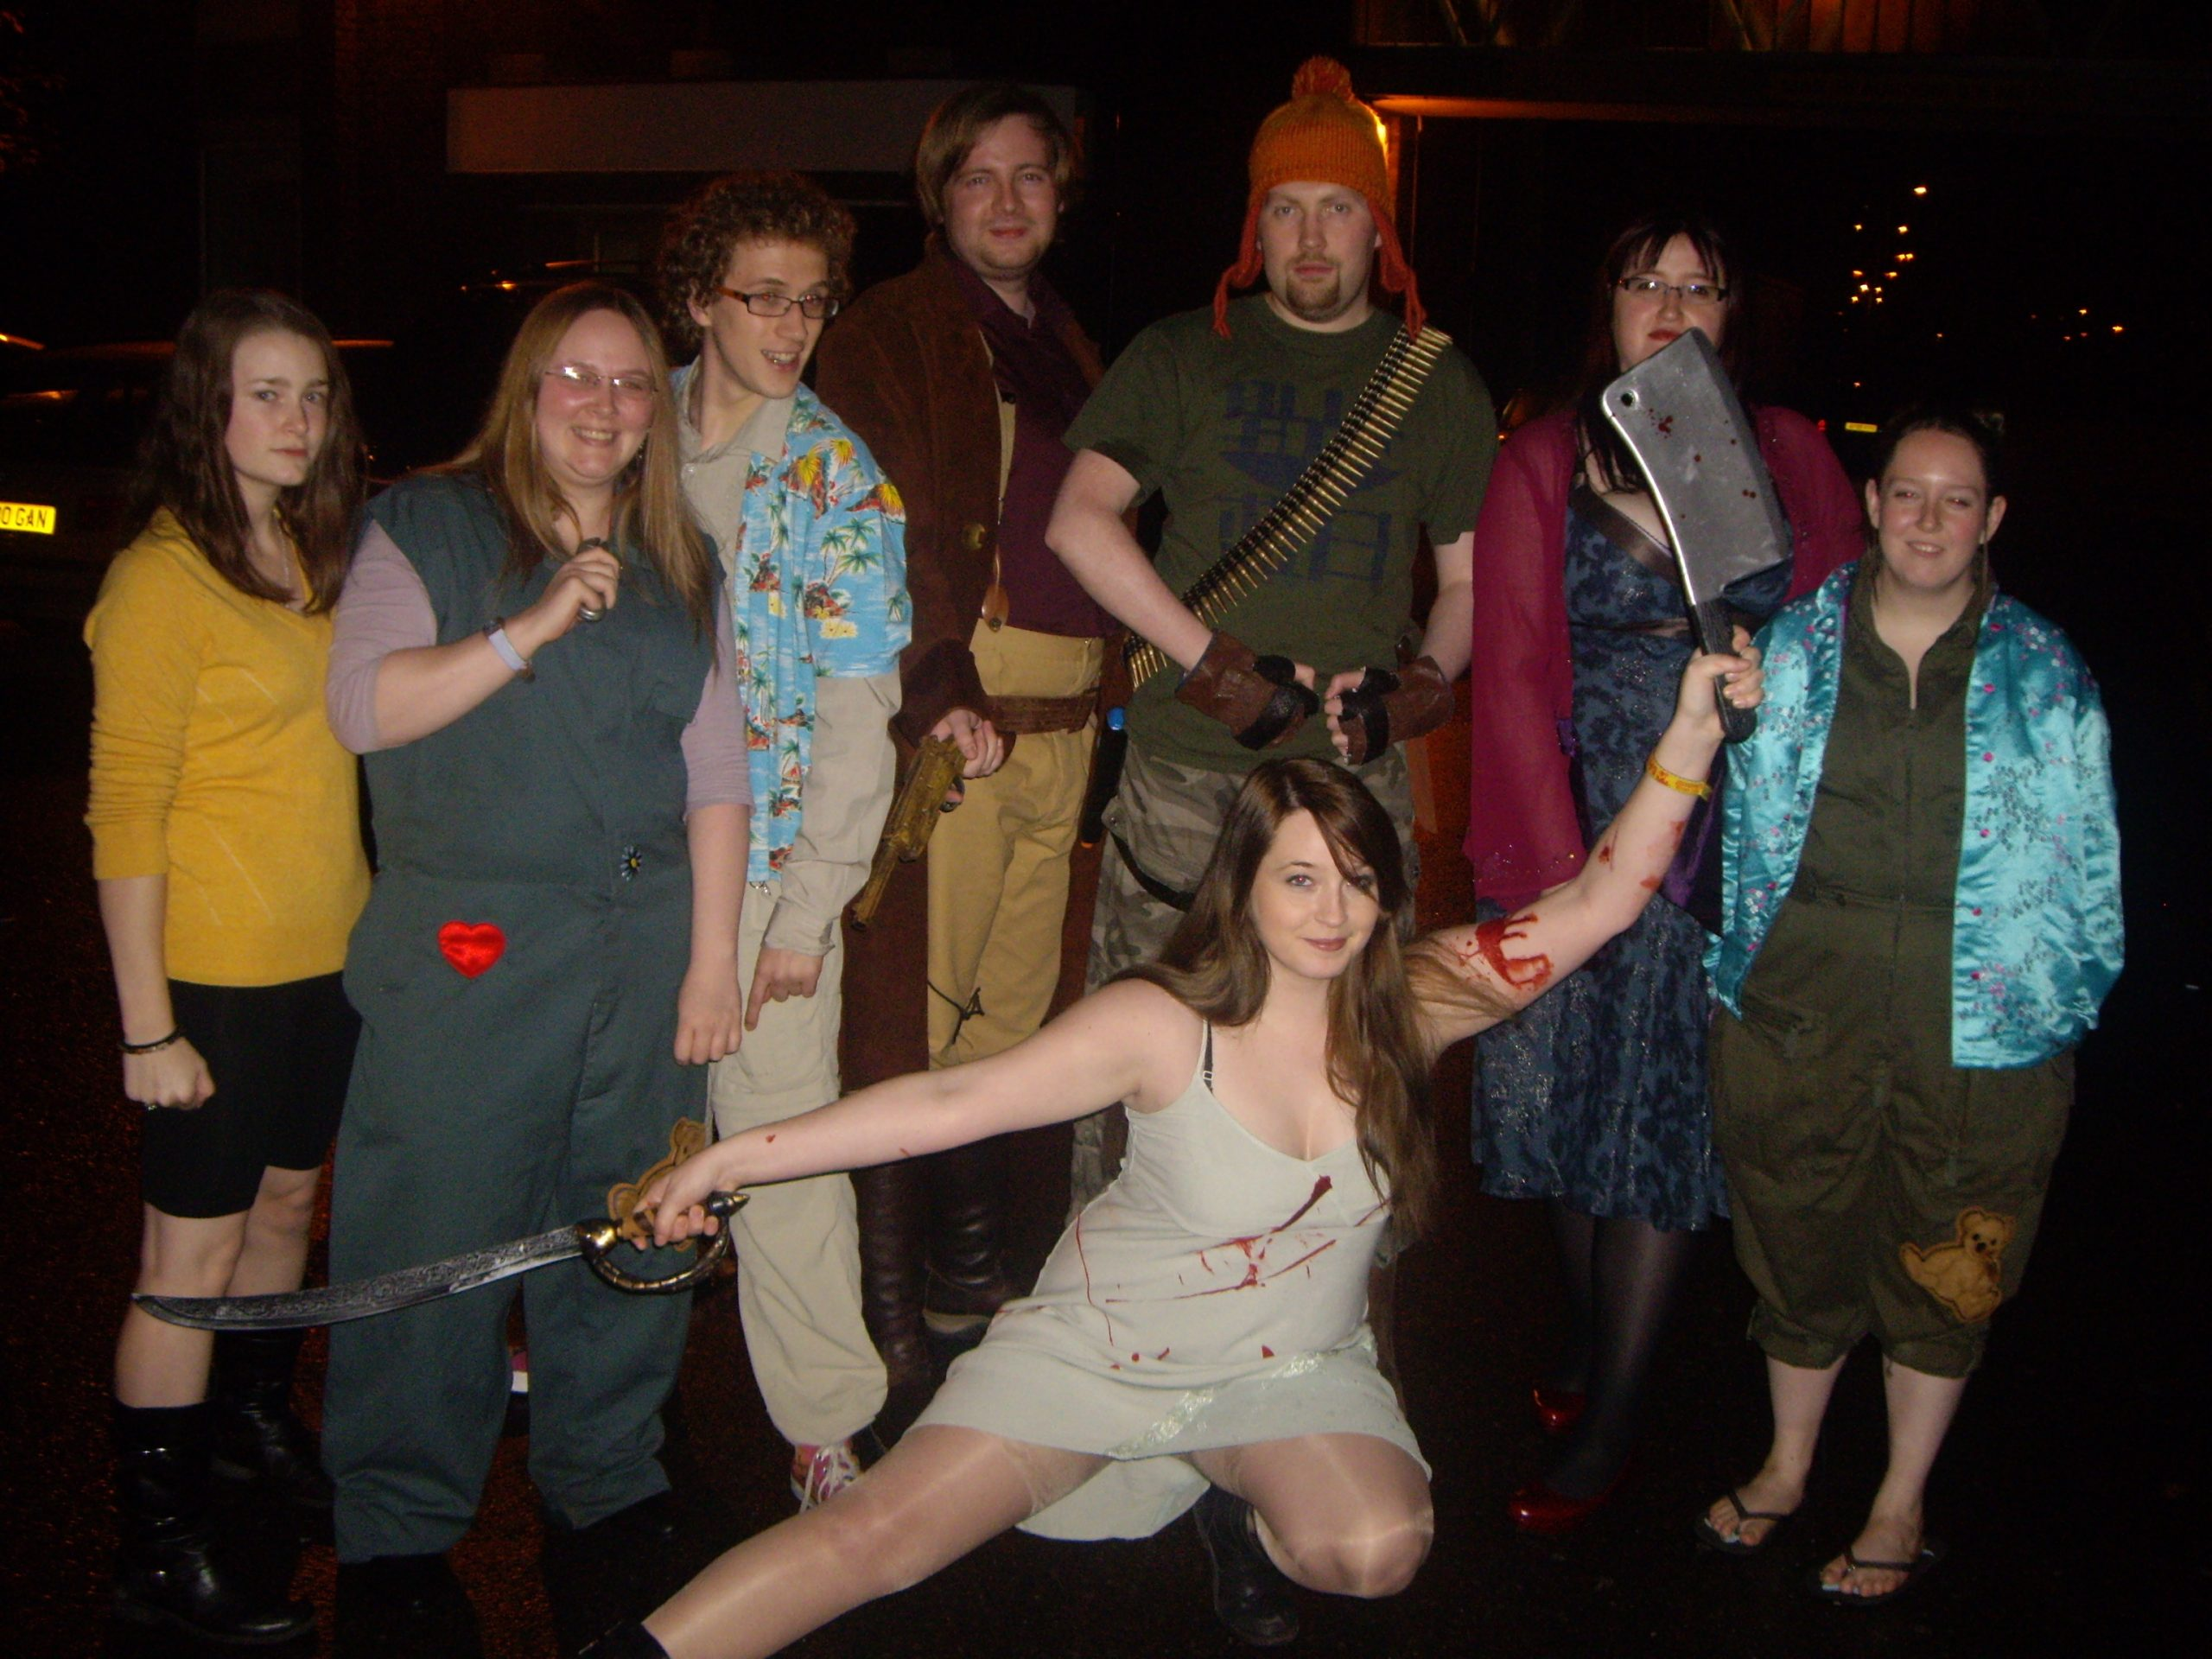 Hallowhedon 2 - Firefly cosplay group